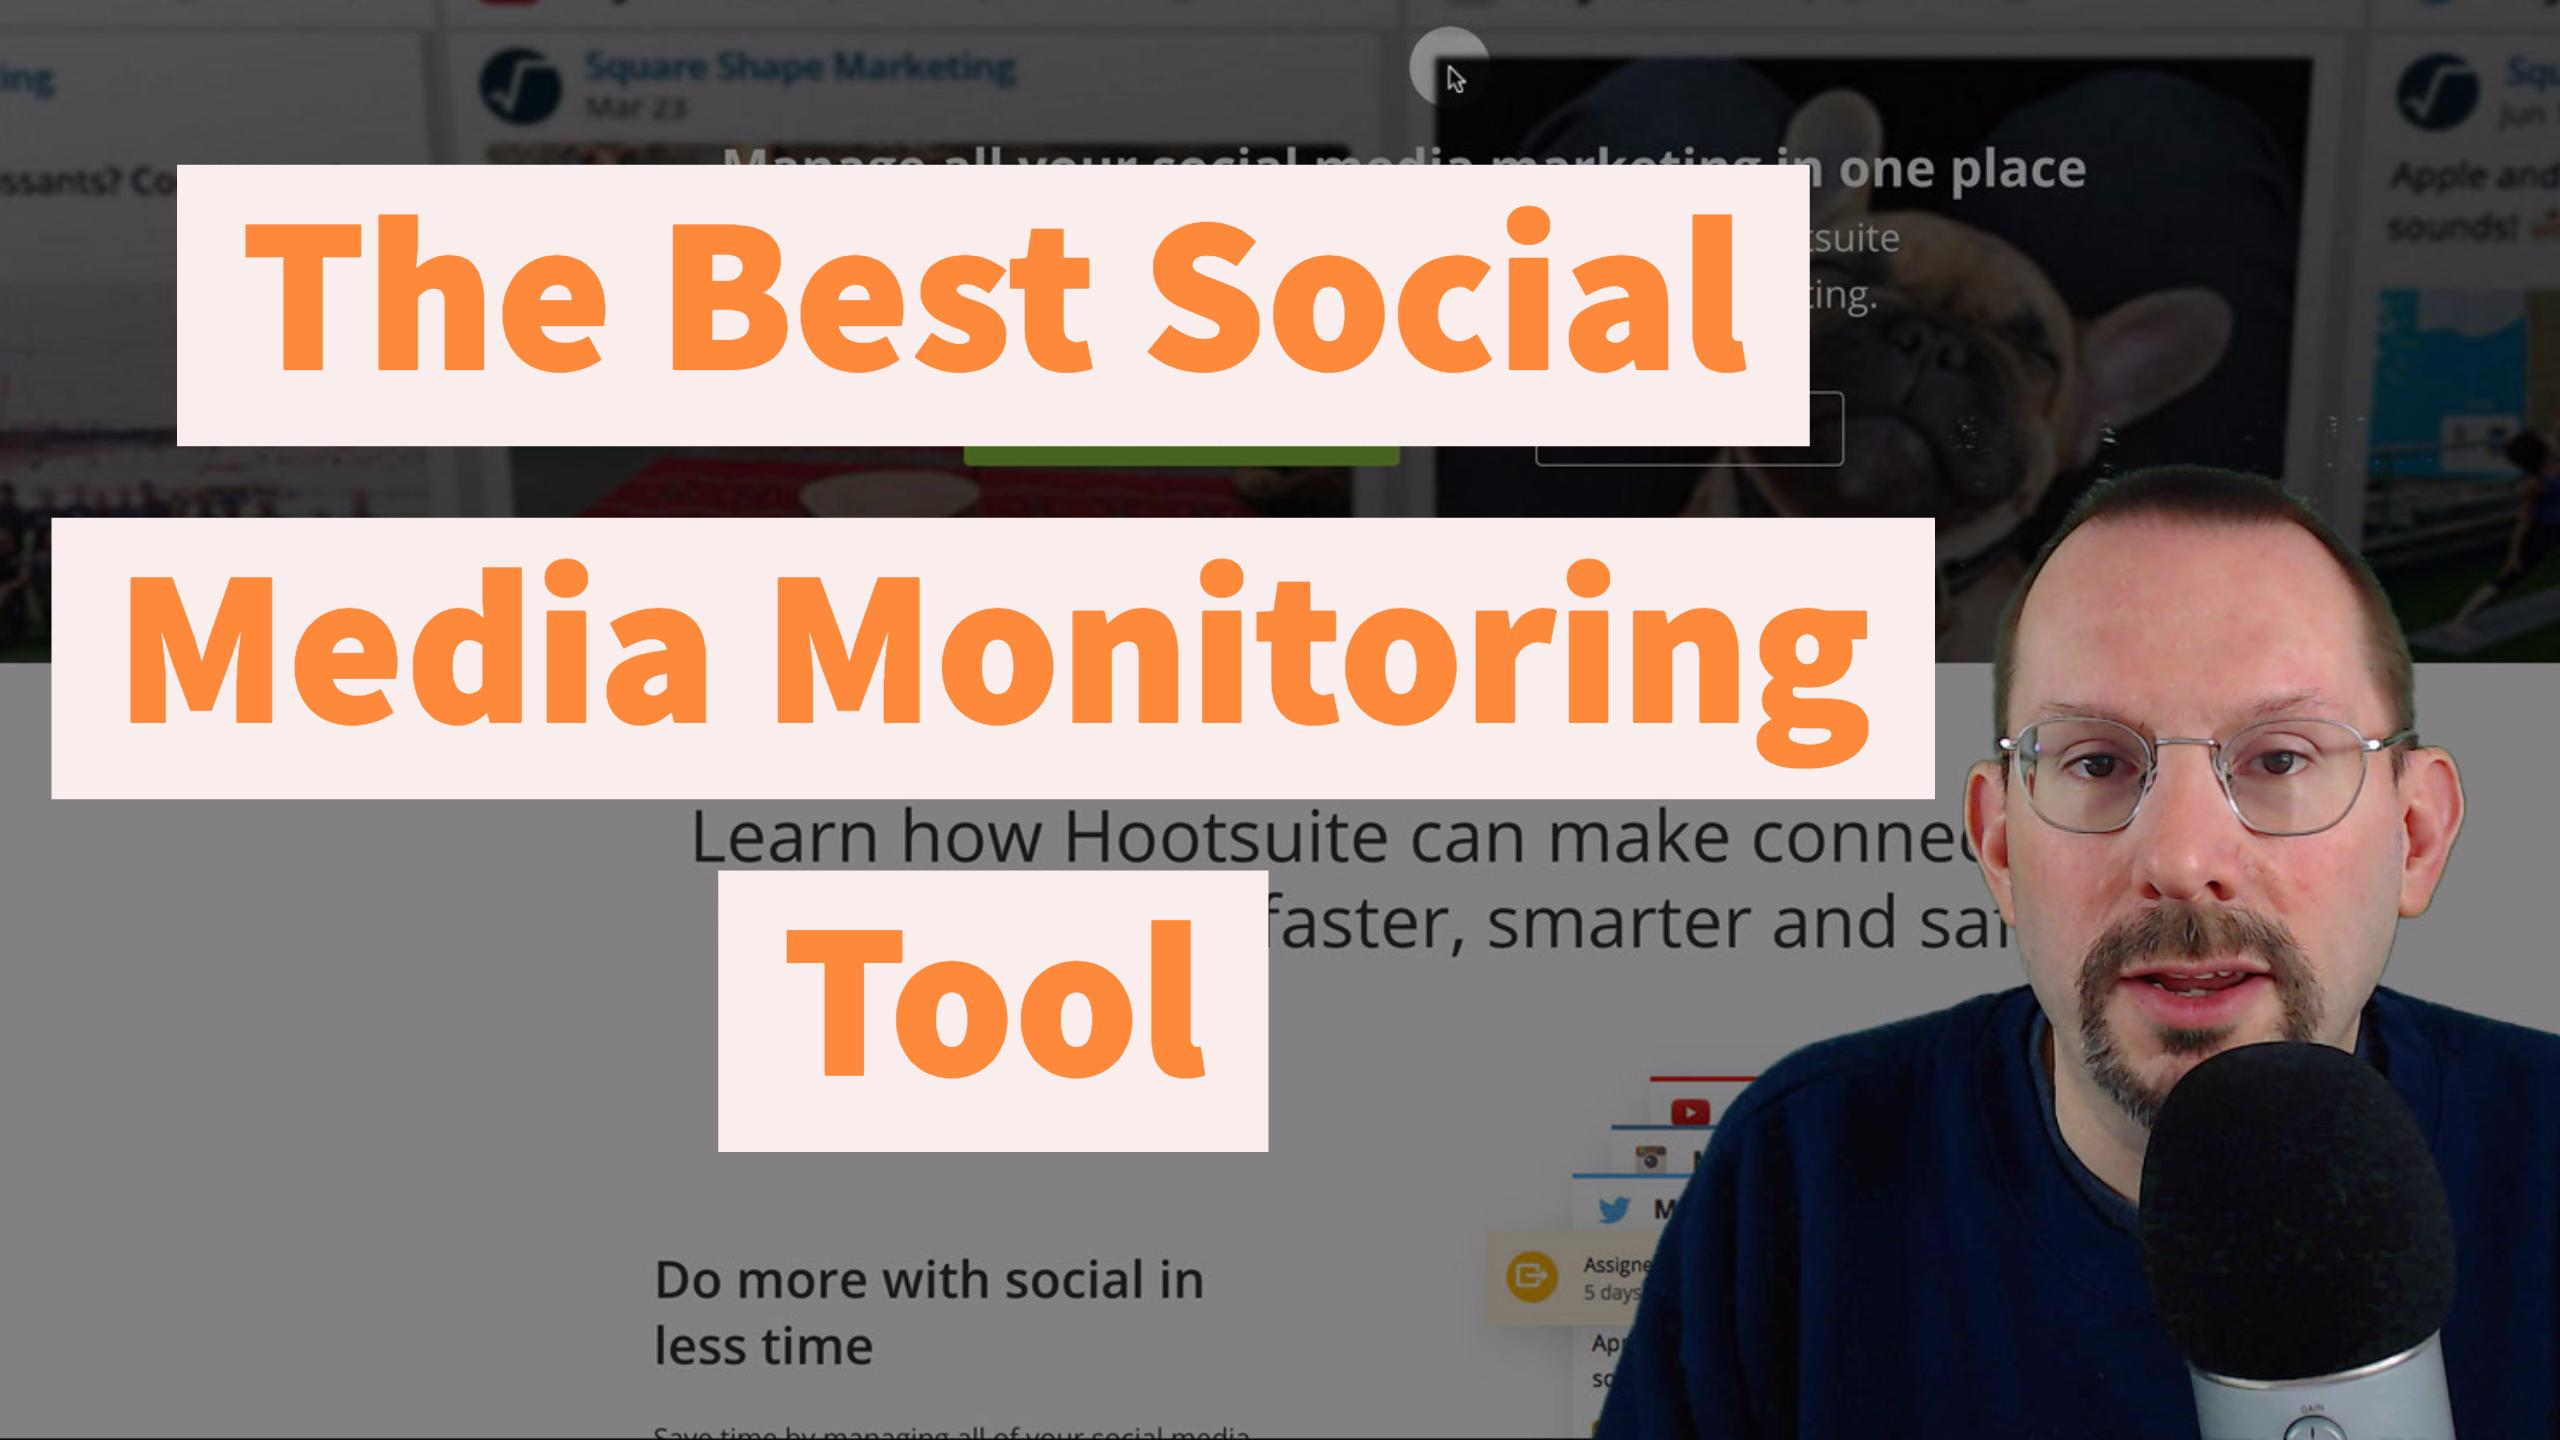 Hootsuite the best social media monitoring tool